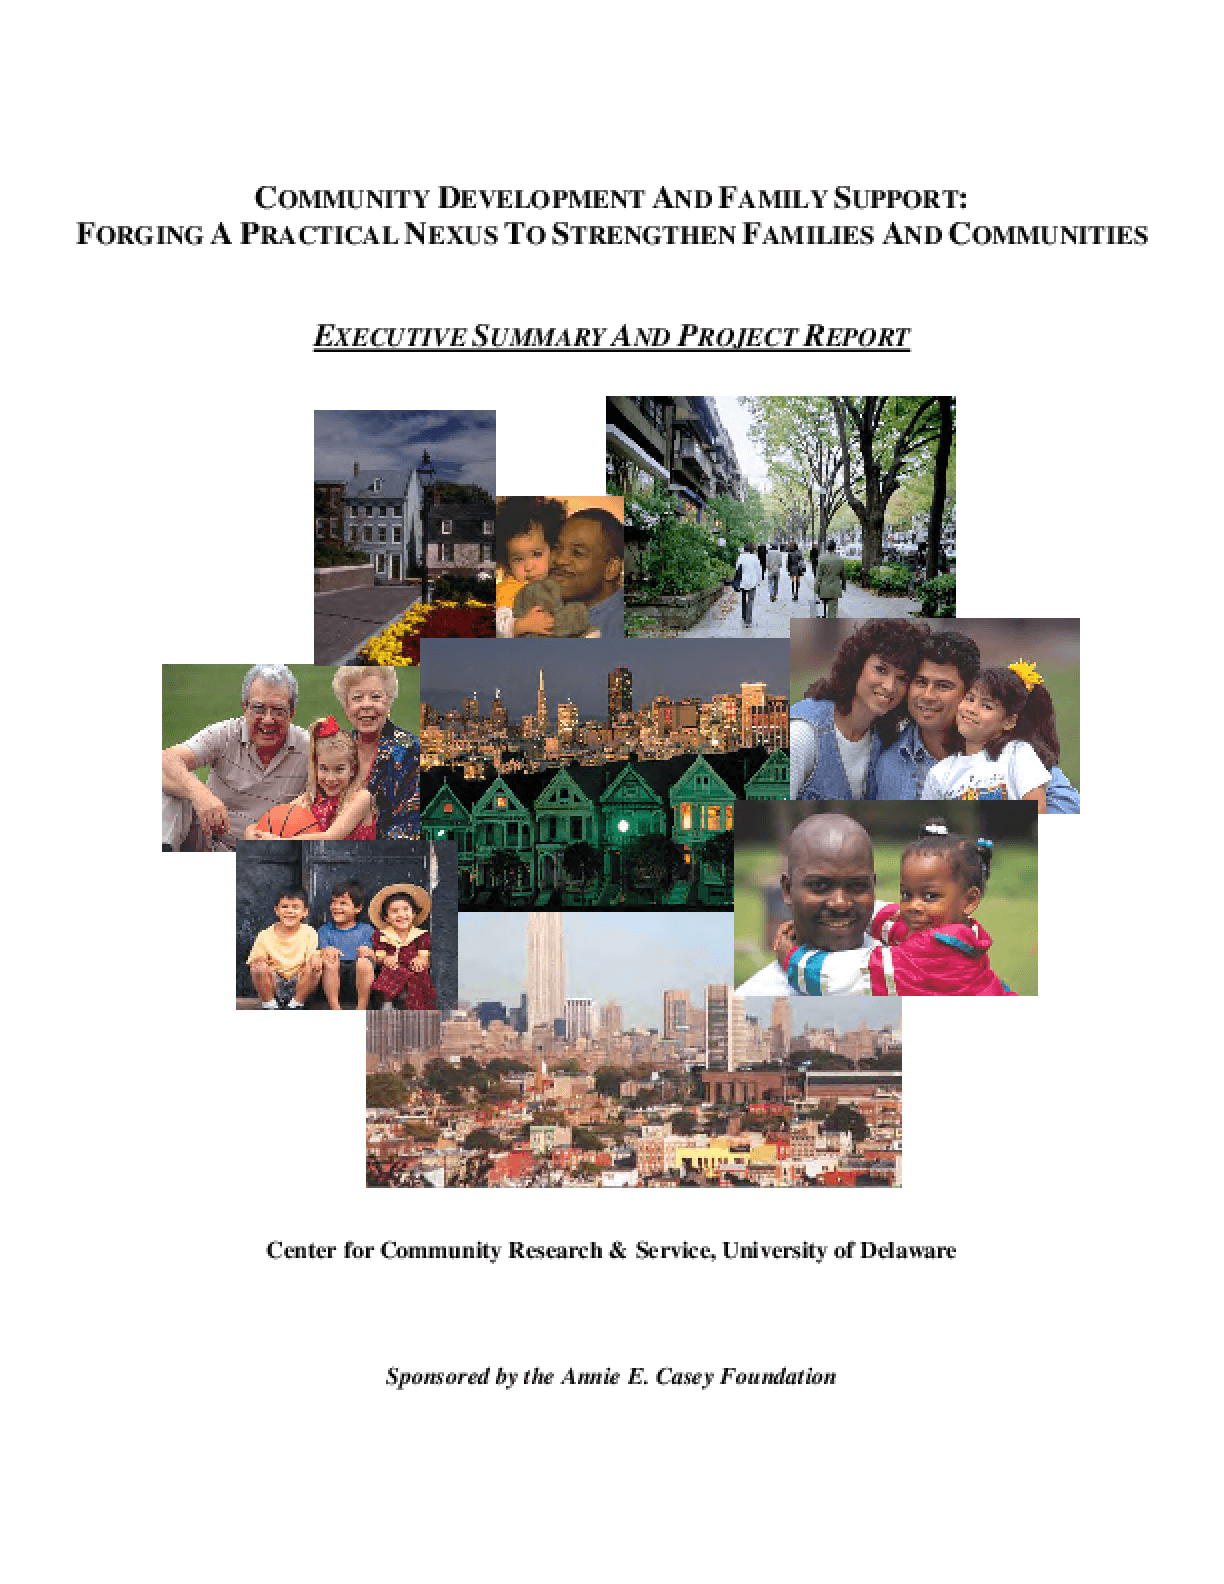 Community Development and Family Support: Forging a Practical Nexus to Strengthen Families and Communities